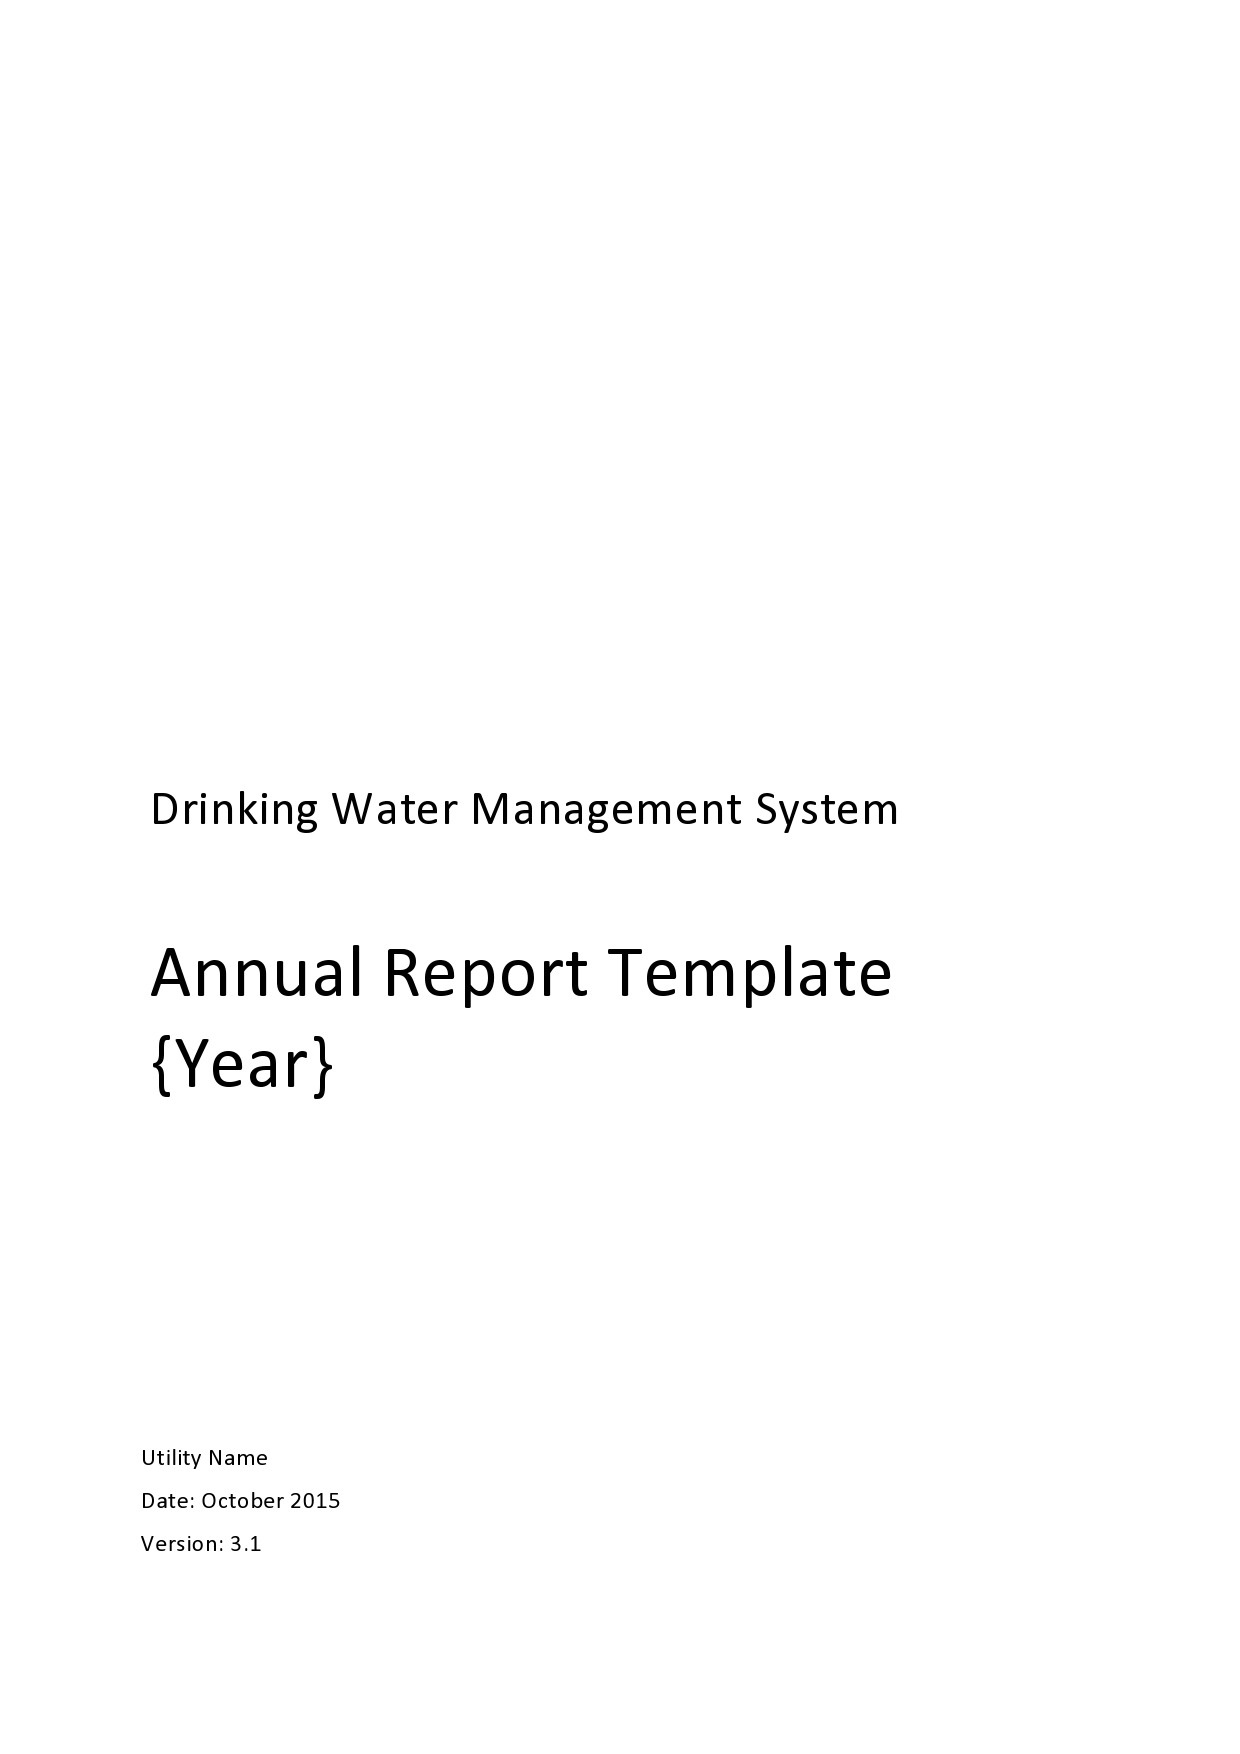 Free annual report template 12